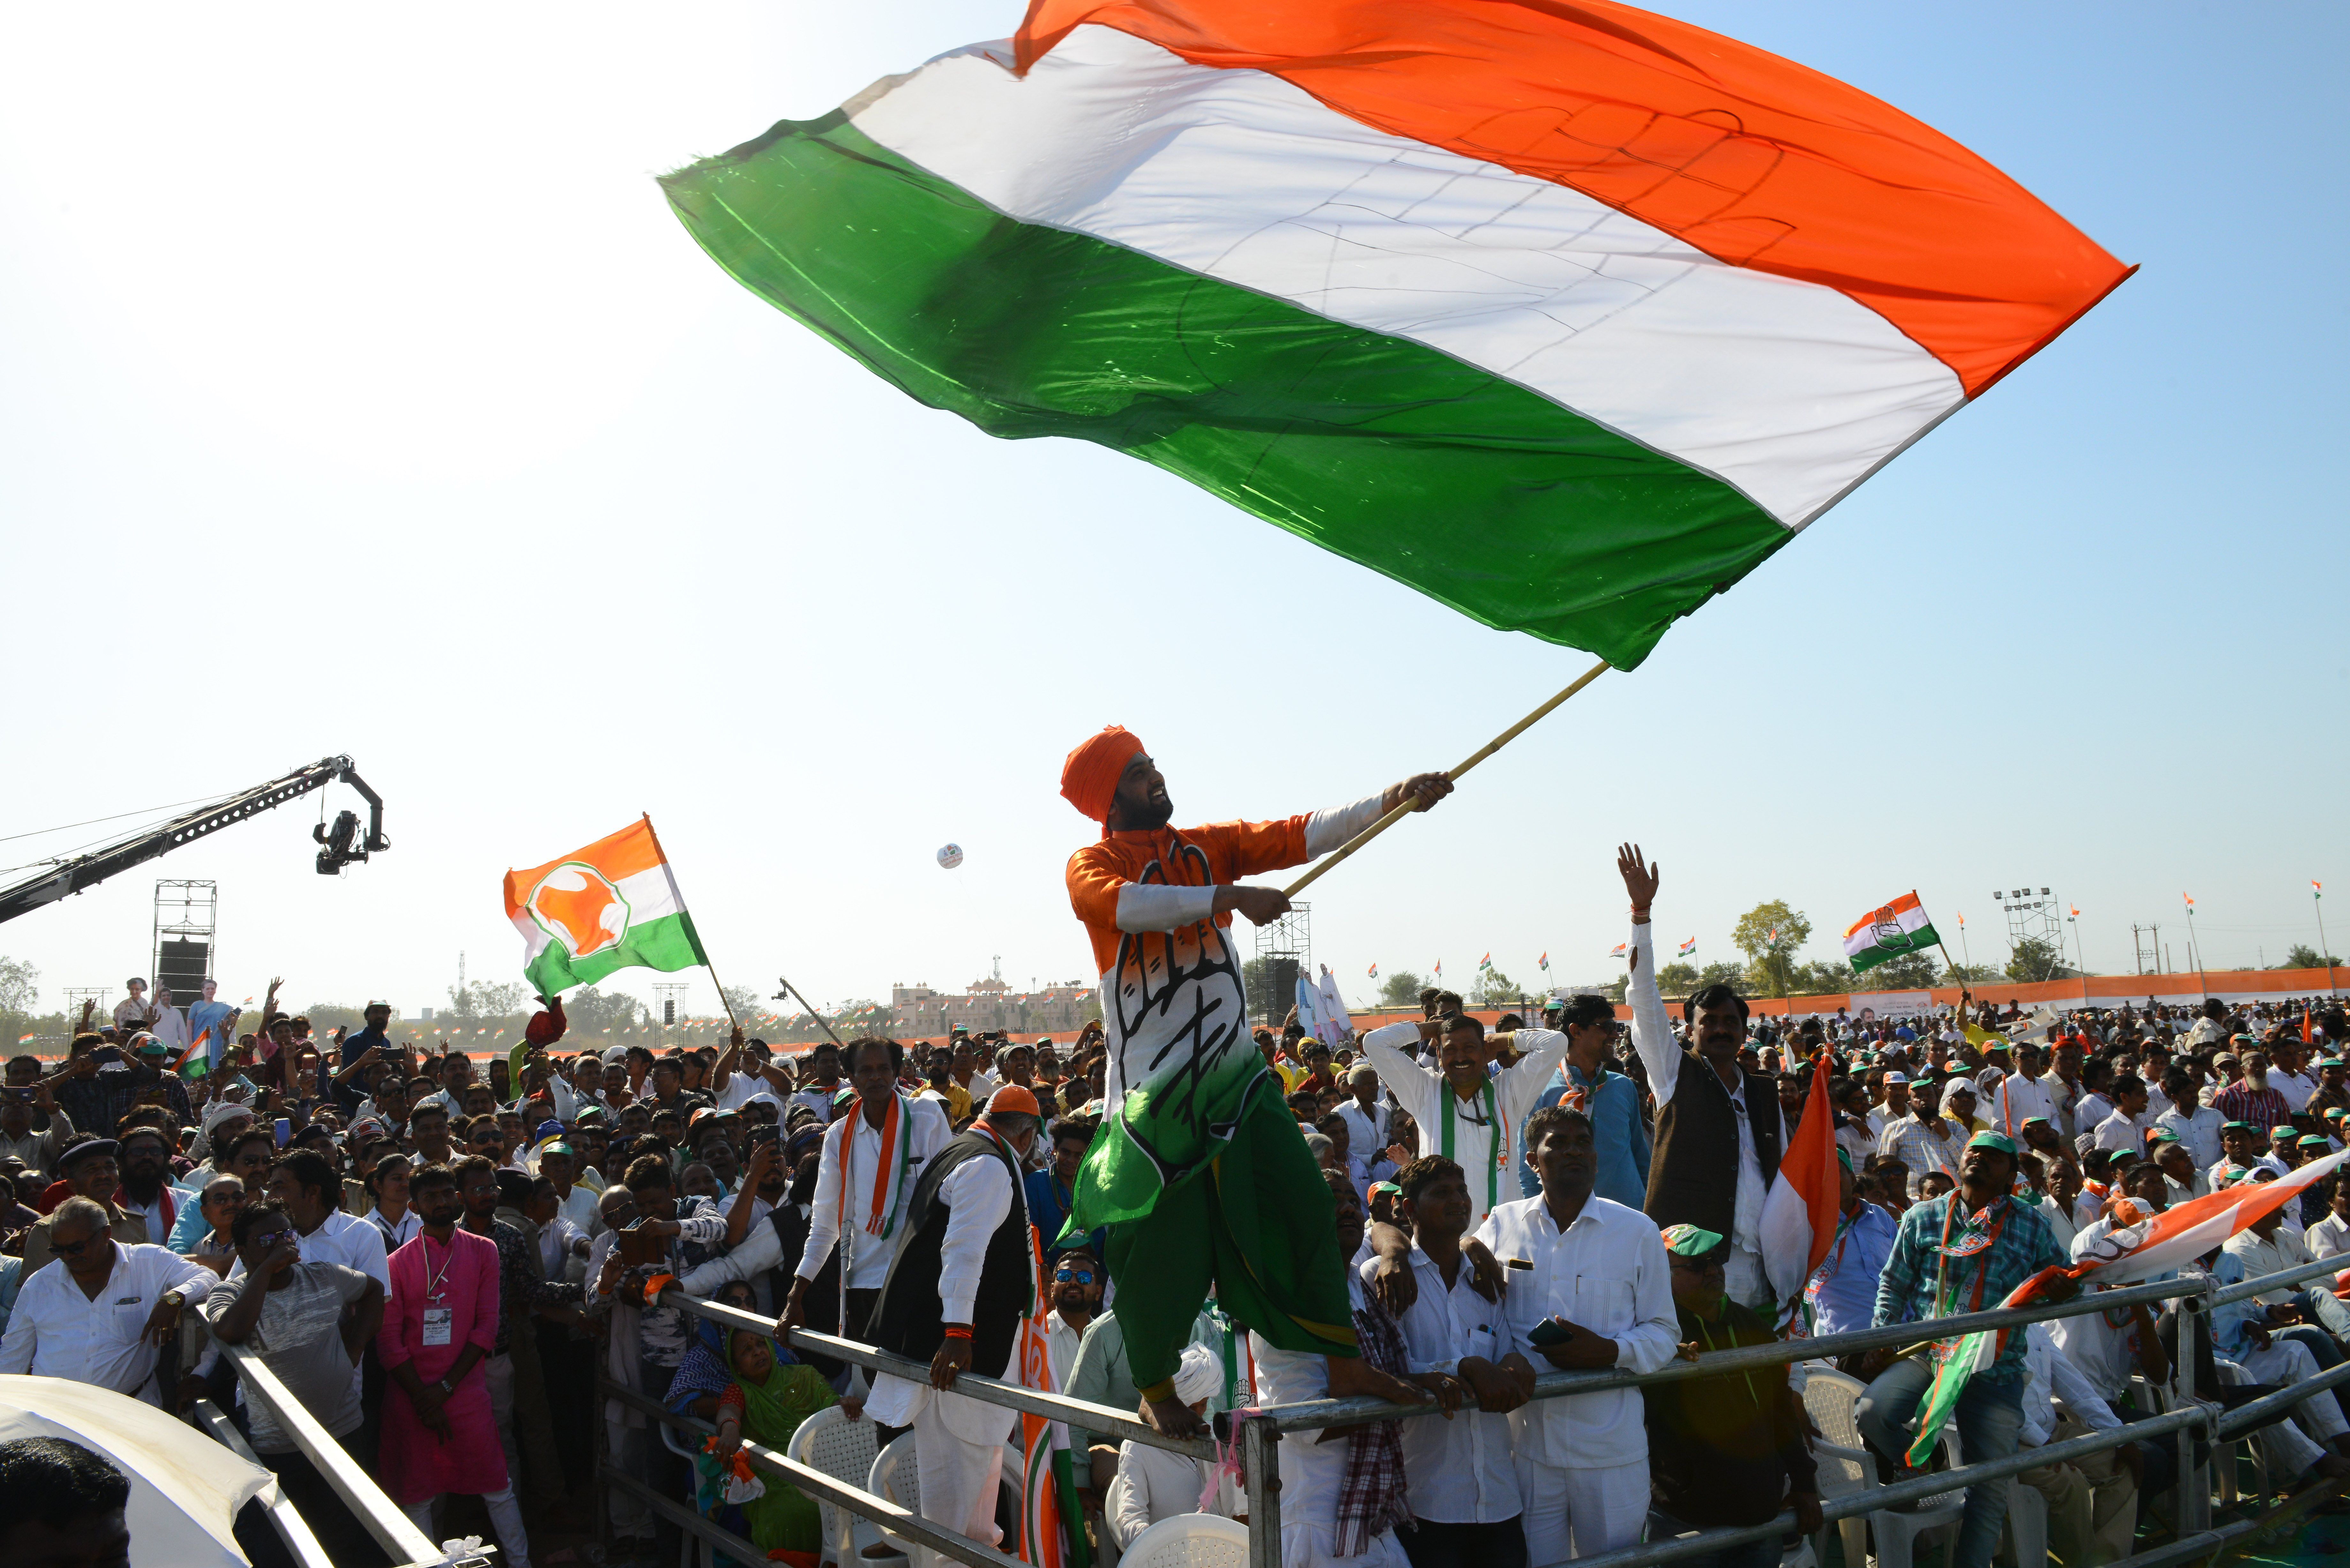 Supporters of the Congress party wave flags as party president Rahul Gandhi speaks during a rally on March 12, 2019.